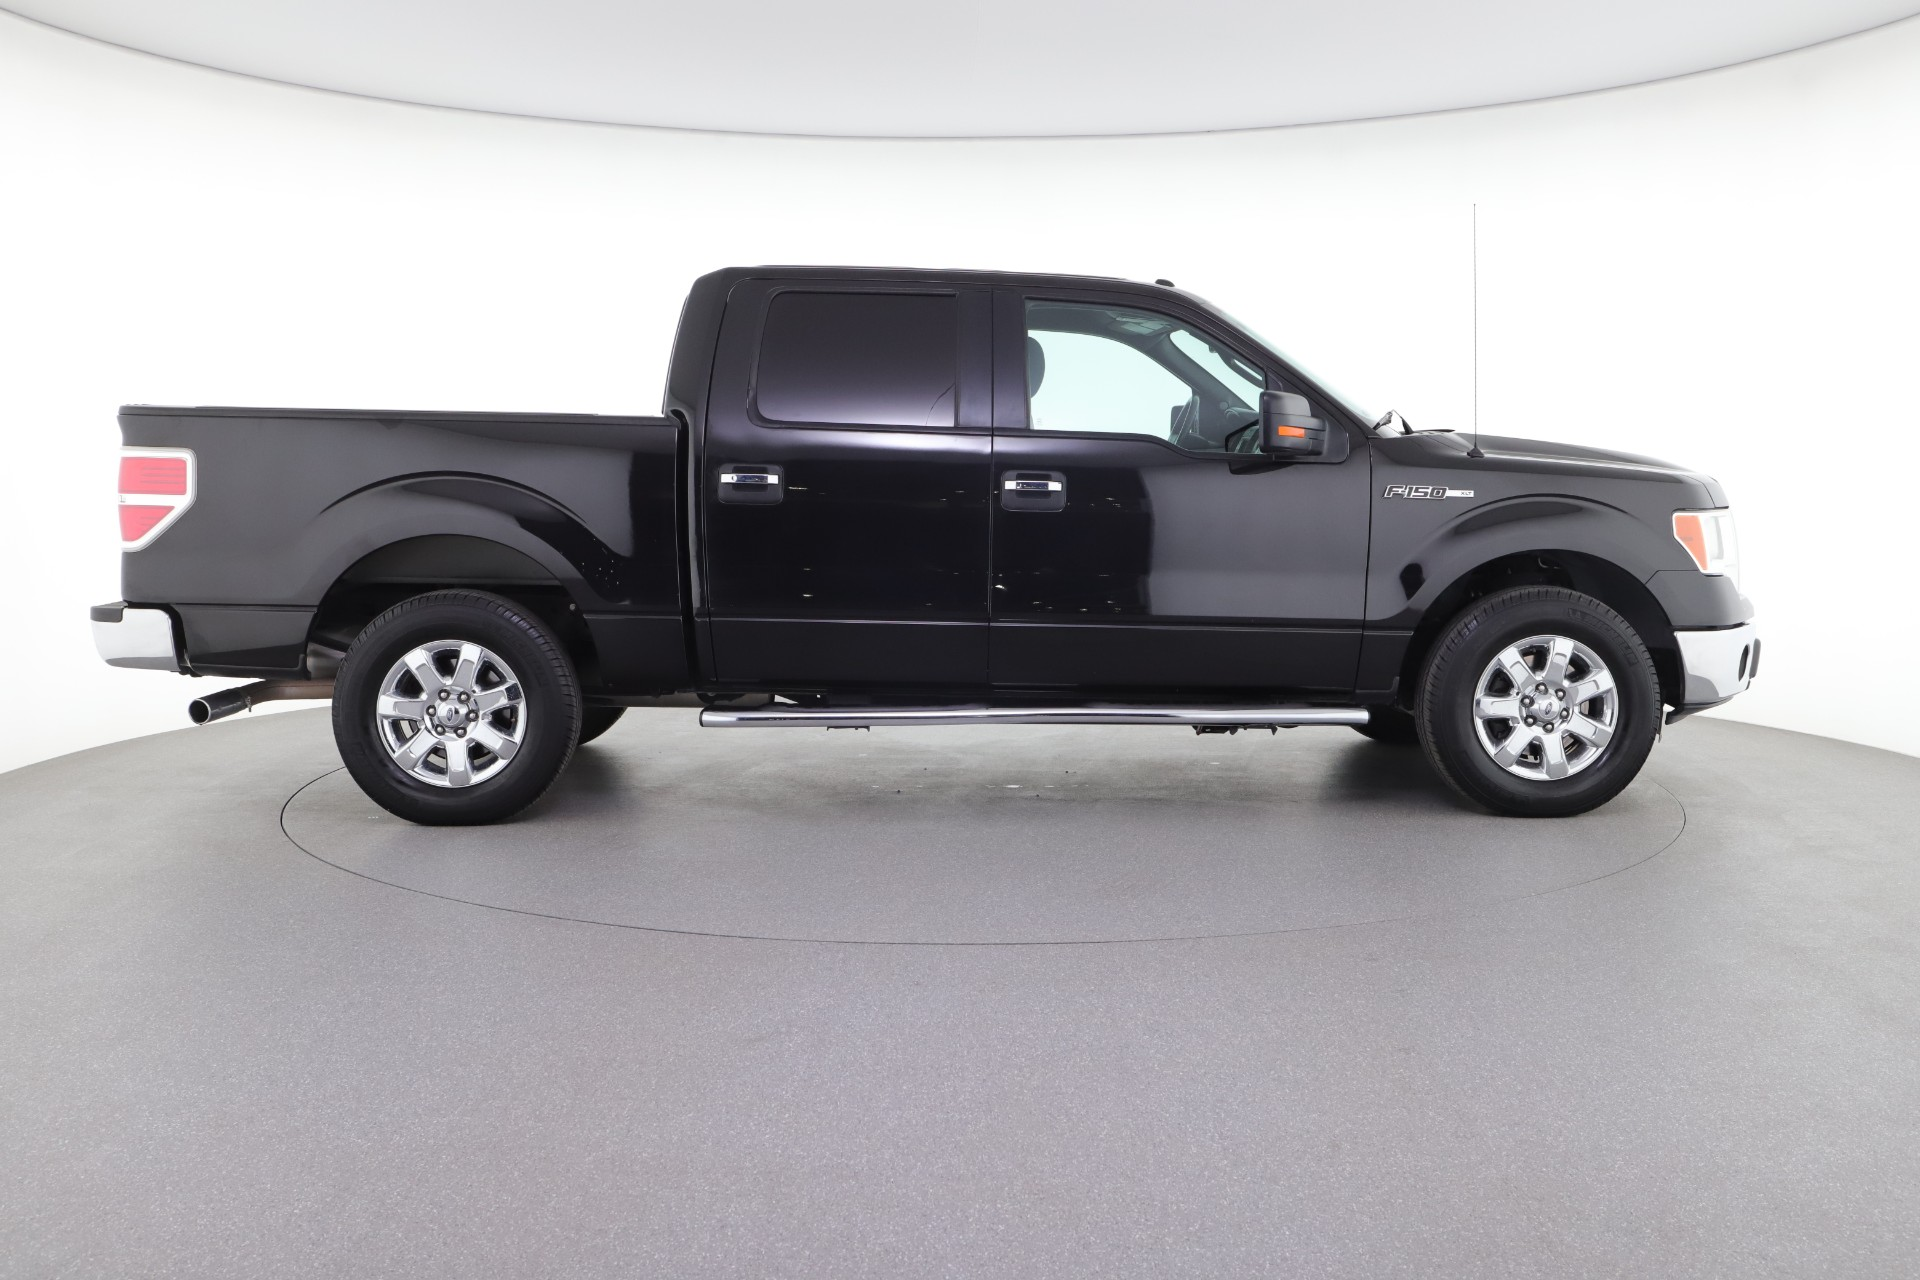 2013 Ford F-150 XLT (from $25,950)